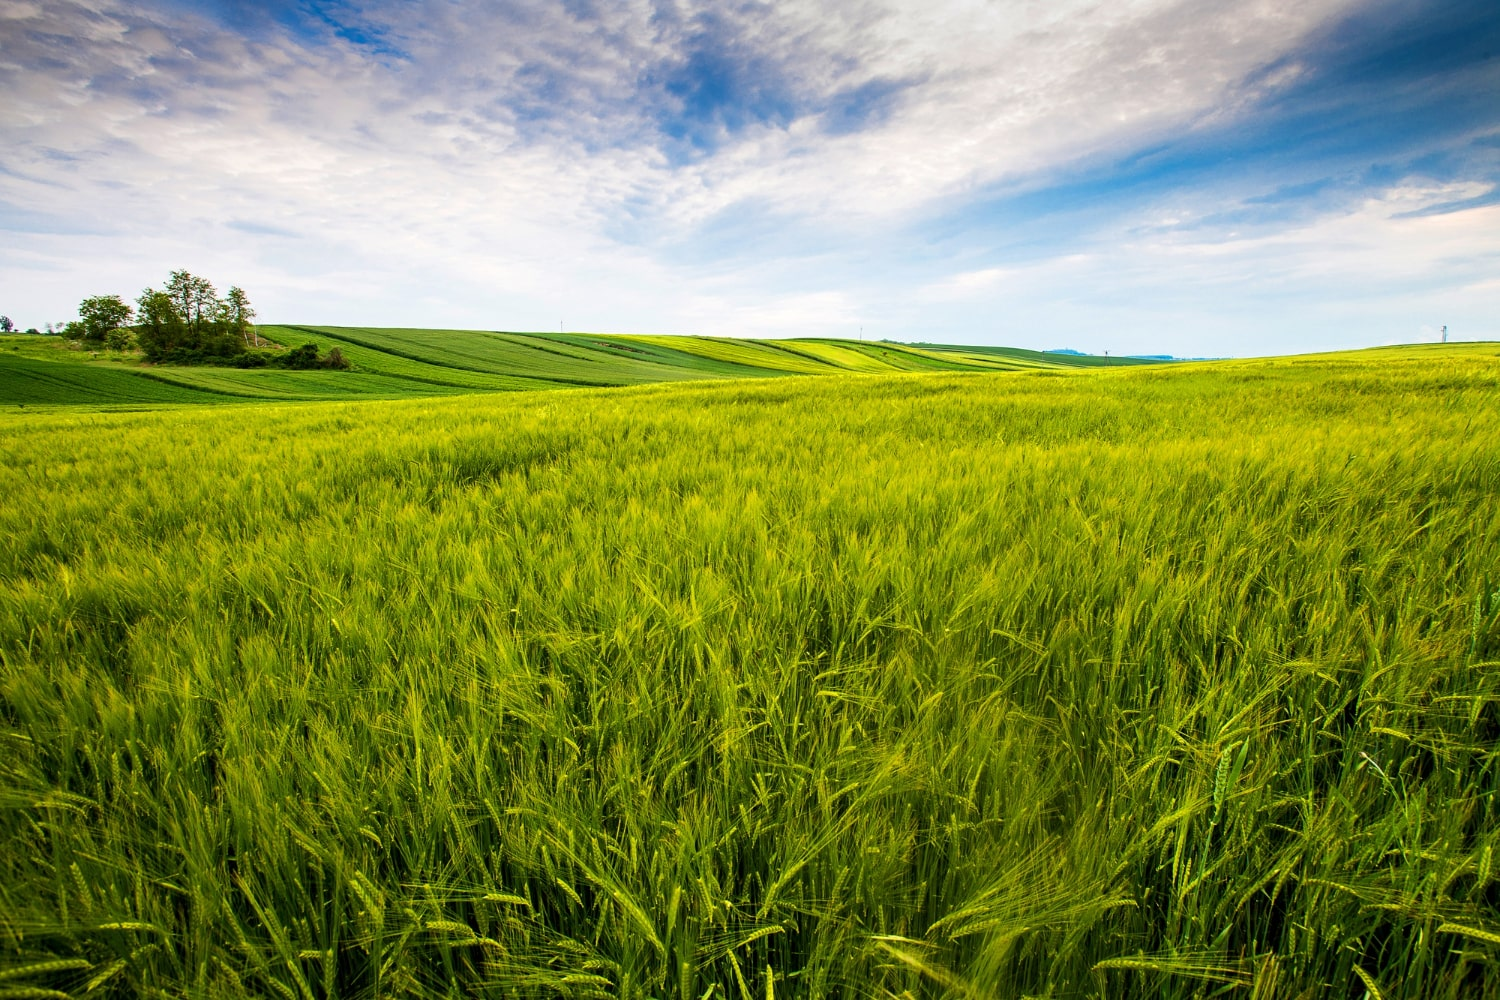 606da2a55cac3_countryside-field-sunny-day-in-the-countryside.jpg